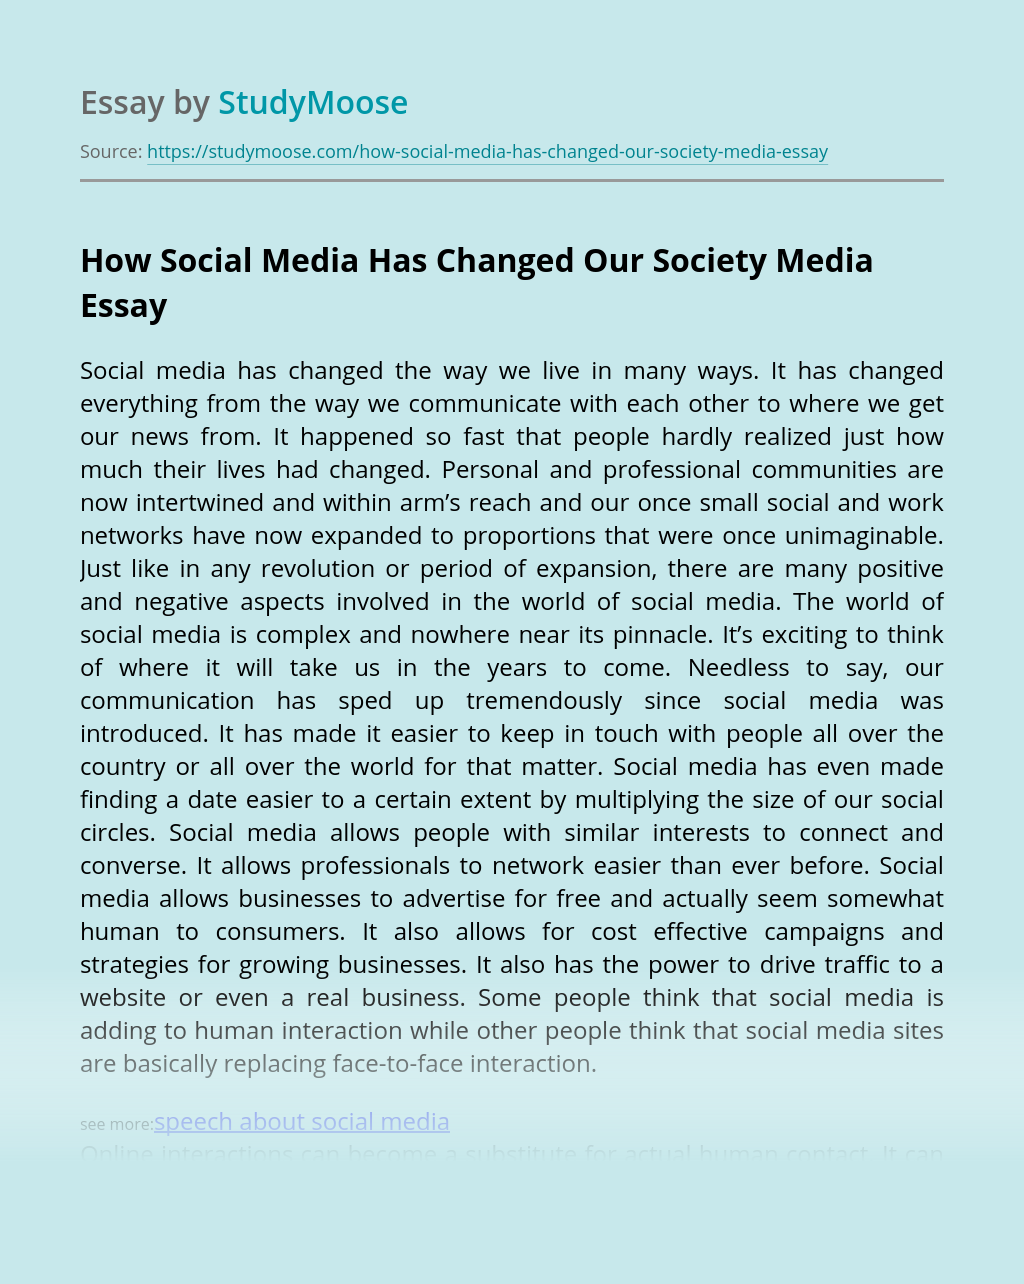 How Social Media Has Changed Our Society Media